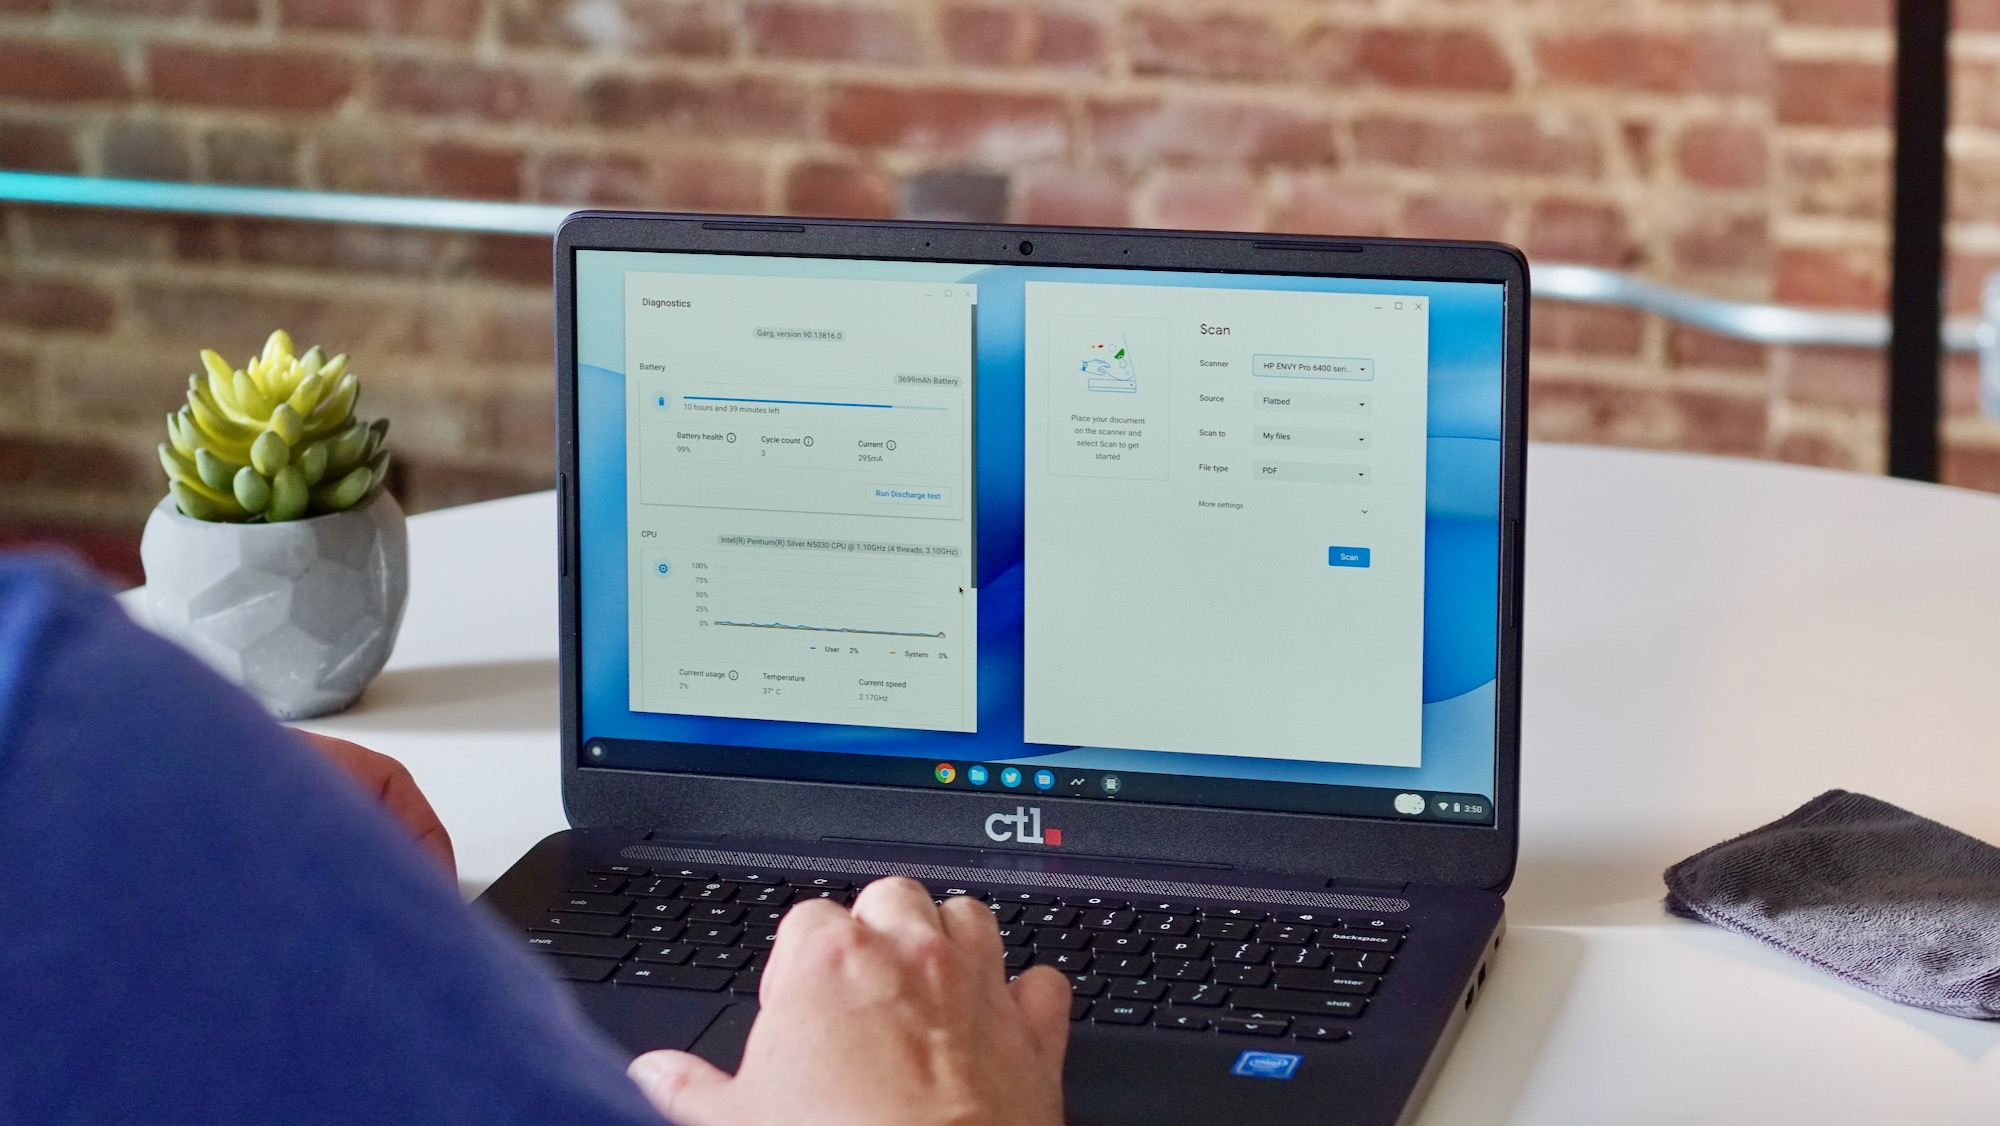 5 new Chrome OS 90 features visualized in a video walk-through